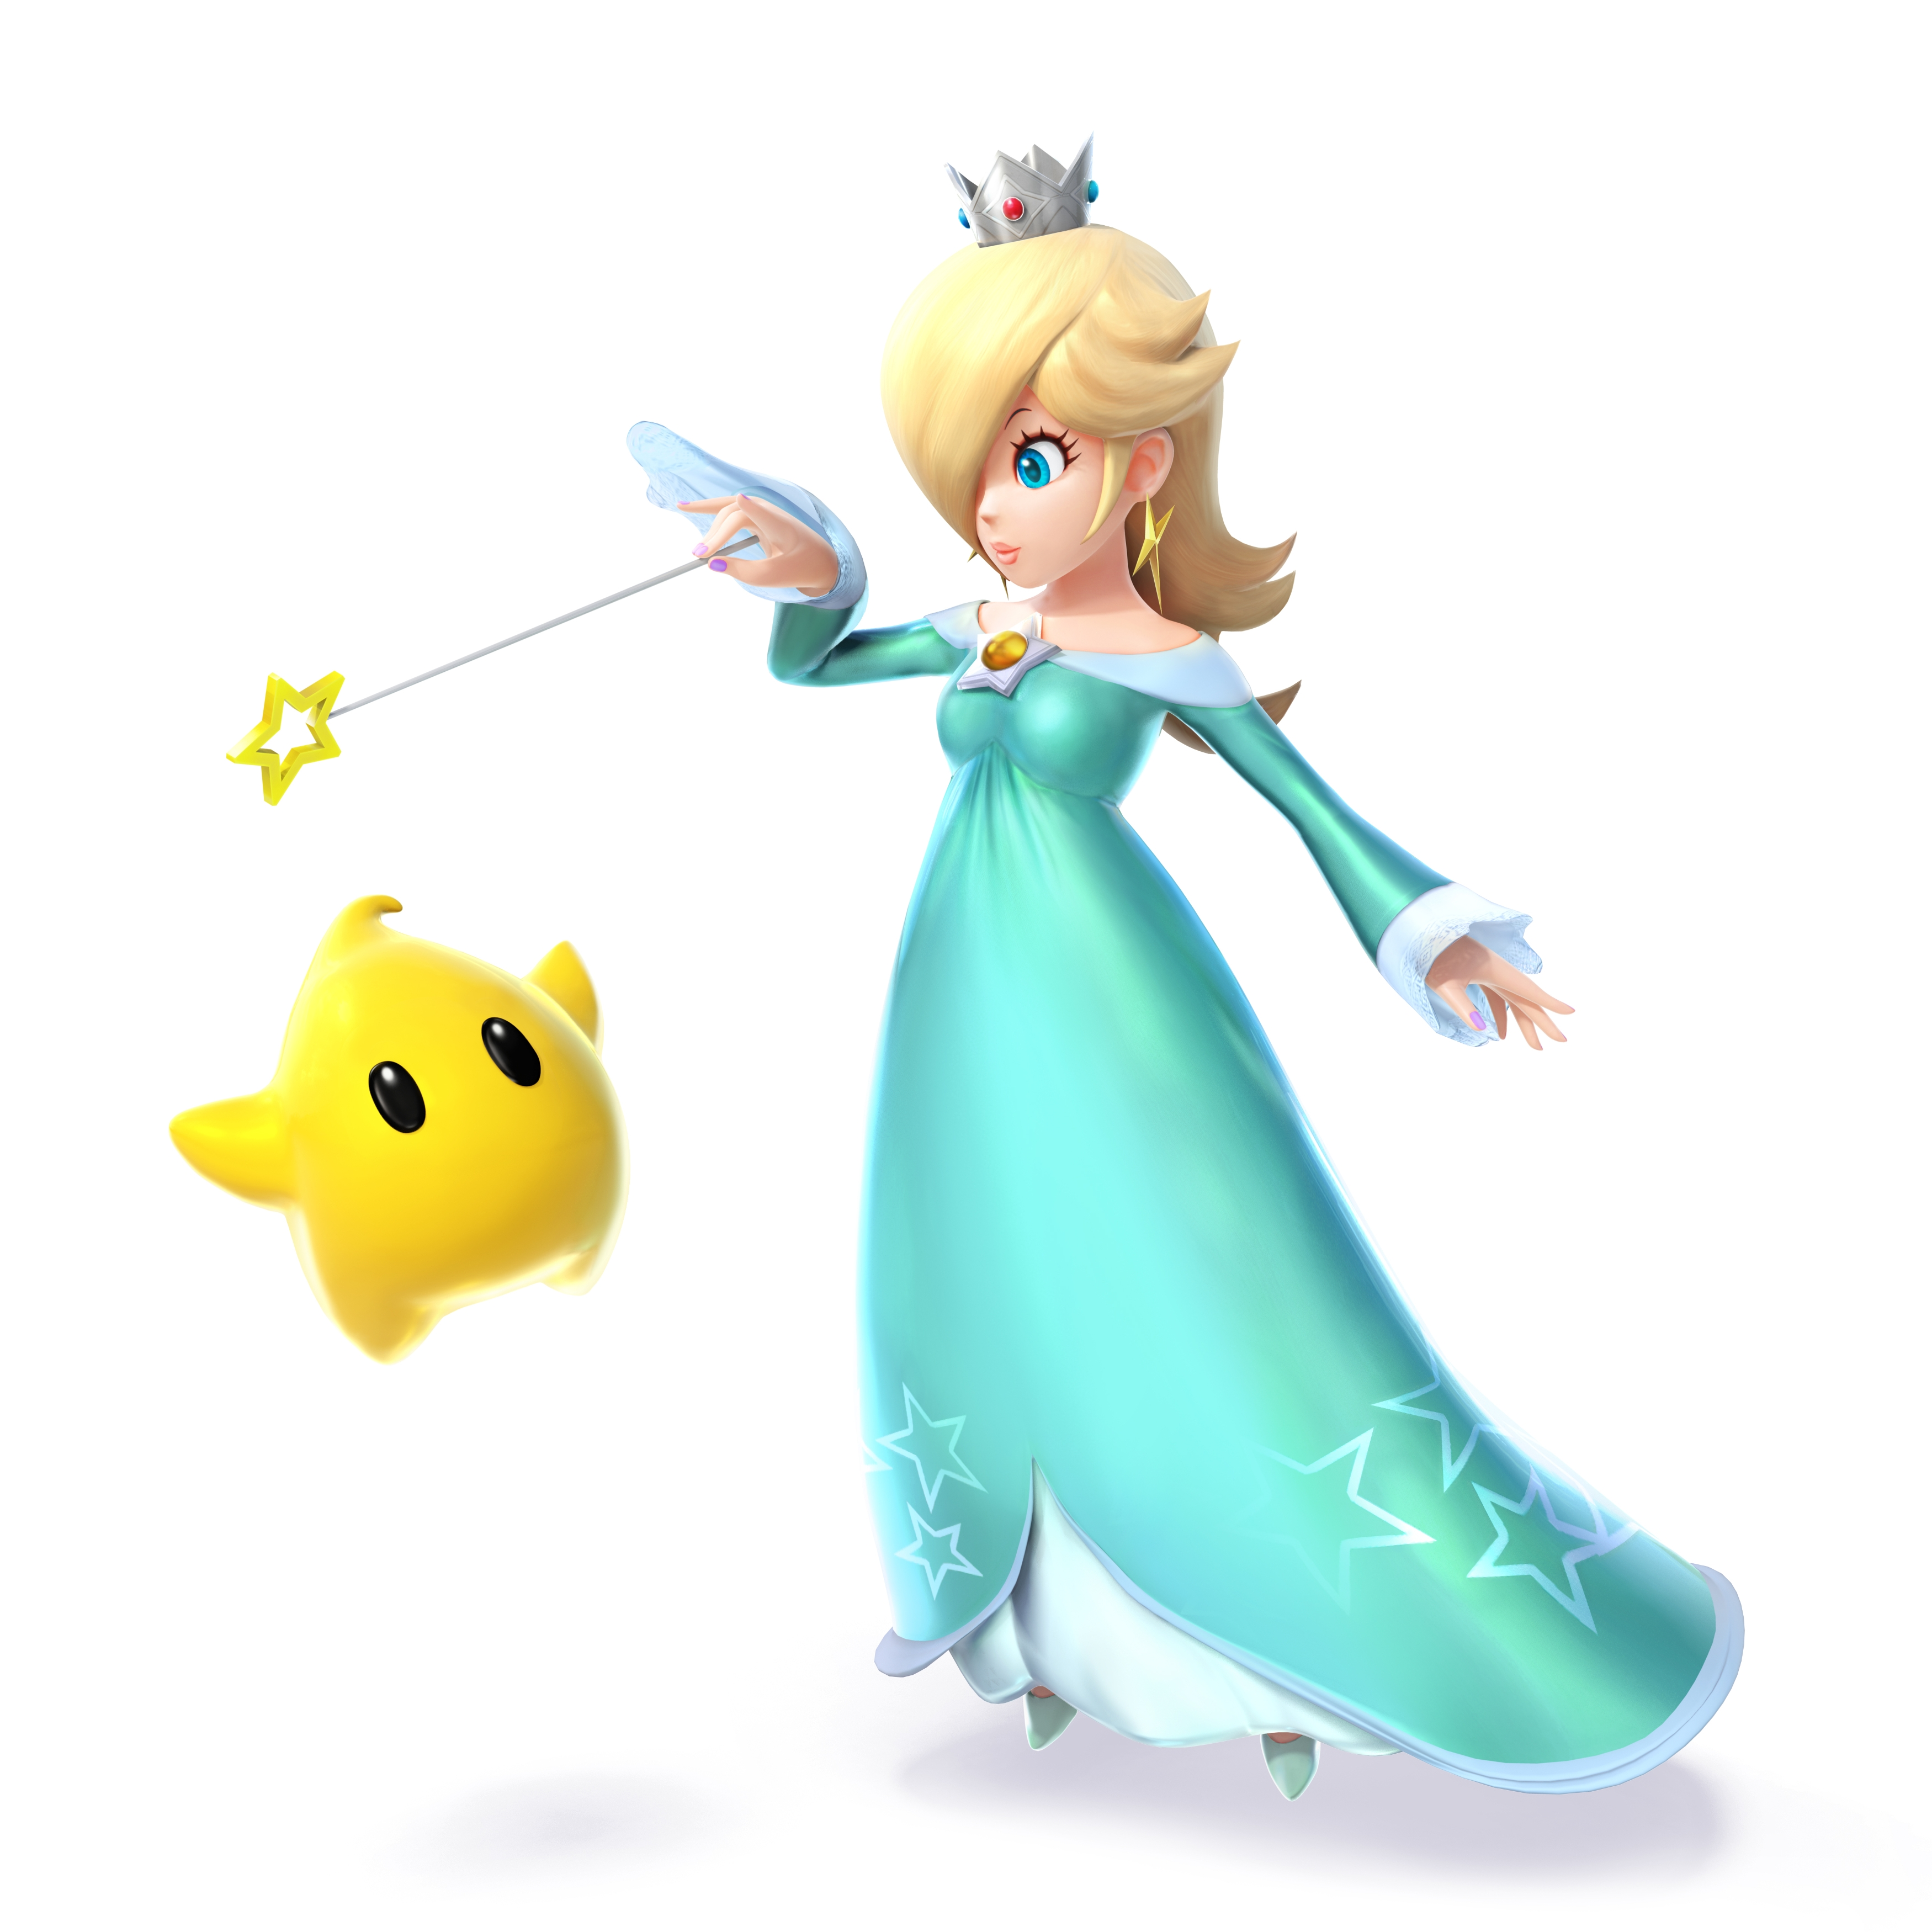 Super smash bros 4 rosalina and luma